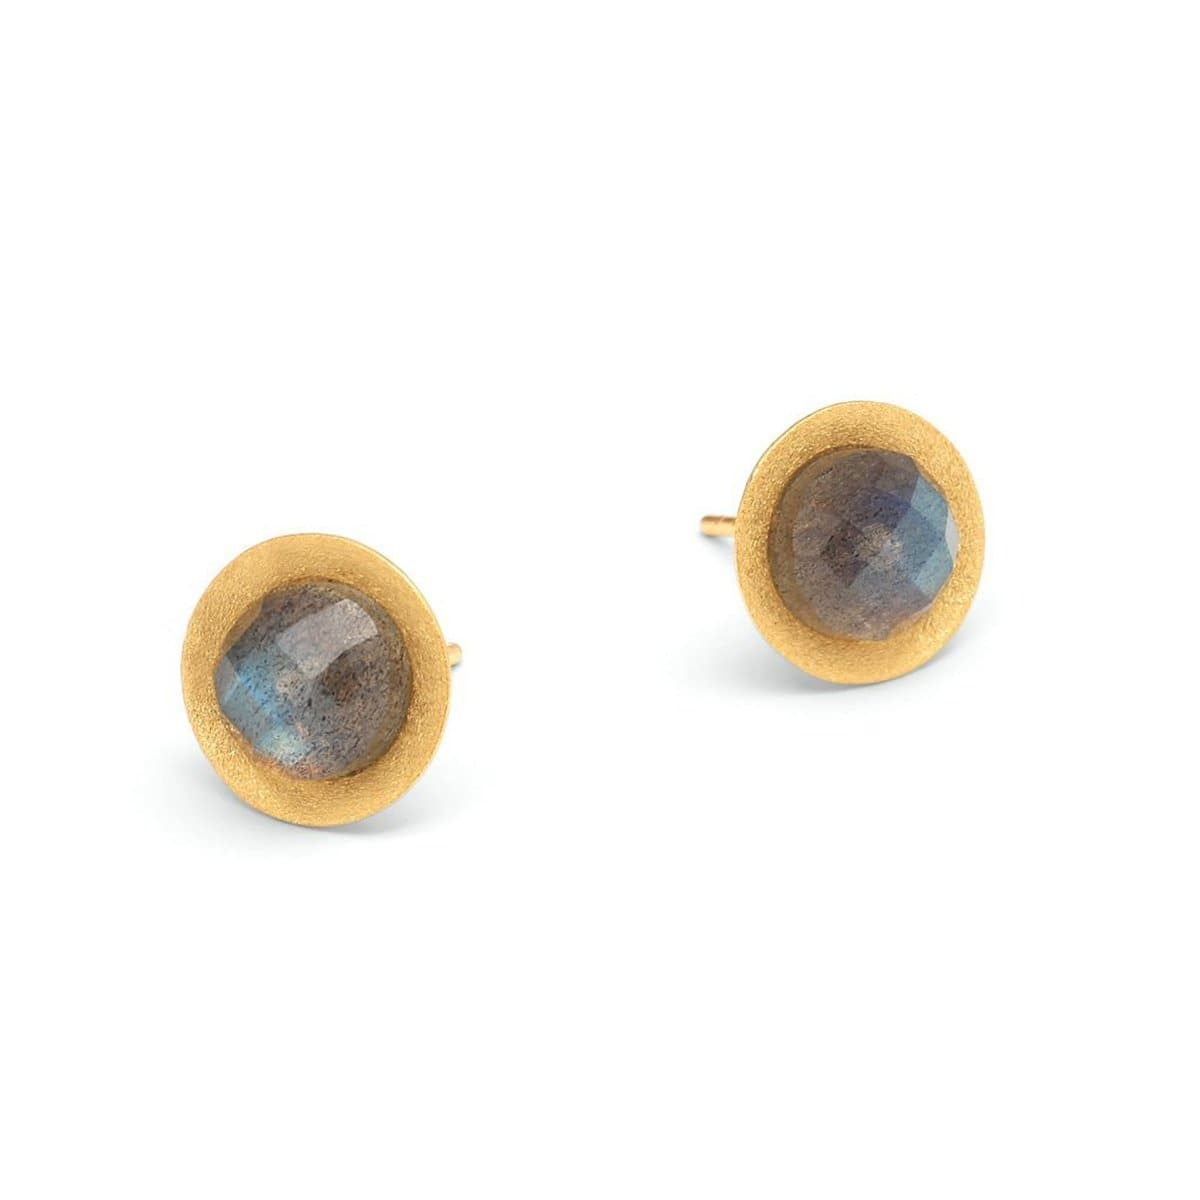 Casira Labradorite Earrings - 19549616 - Bernd Wolf